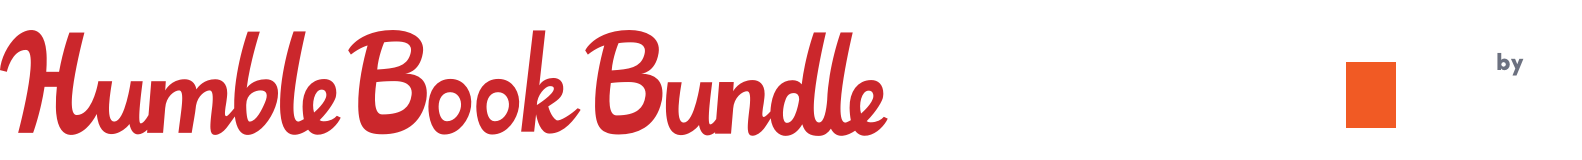 The Humble Book Bundle: DevOps by Packt